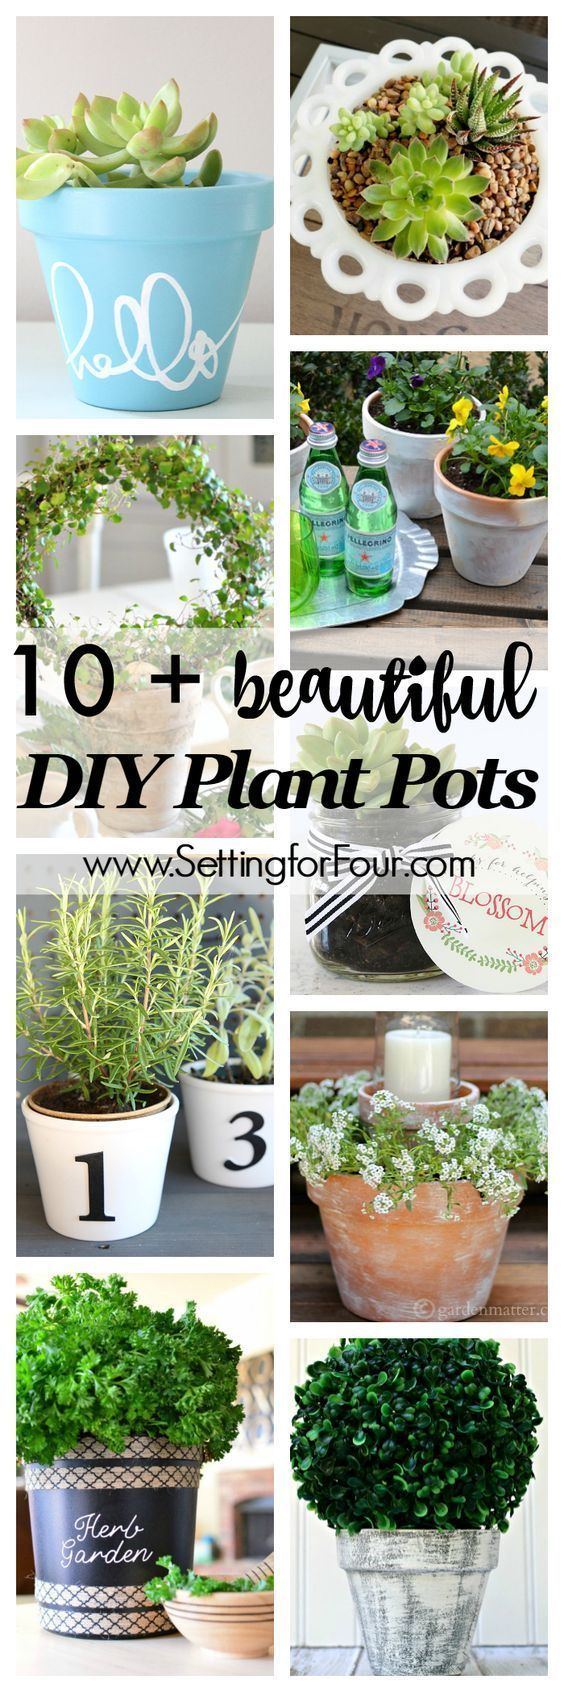 10 Beautiful DIY Plant Pots - Setting for Four